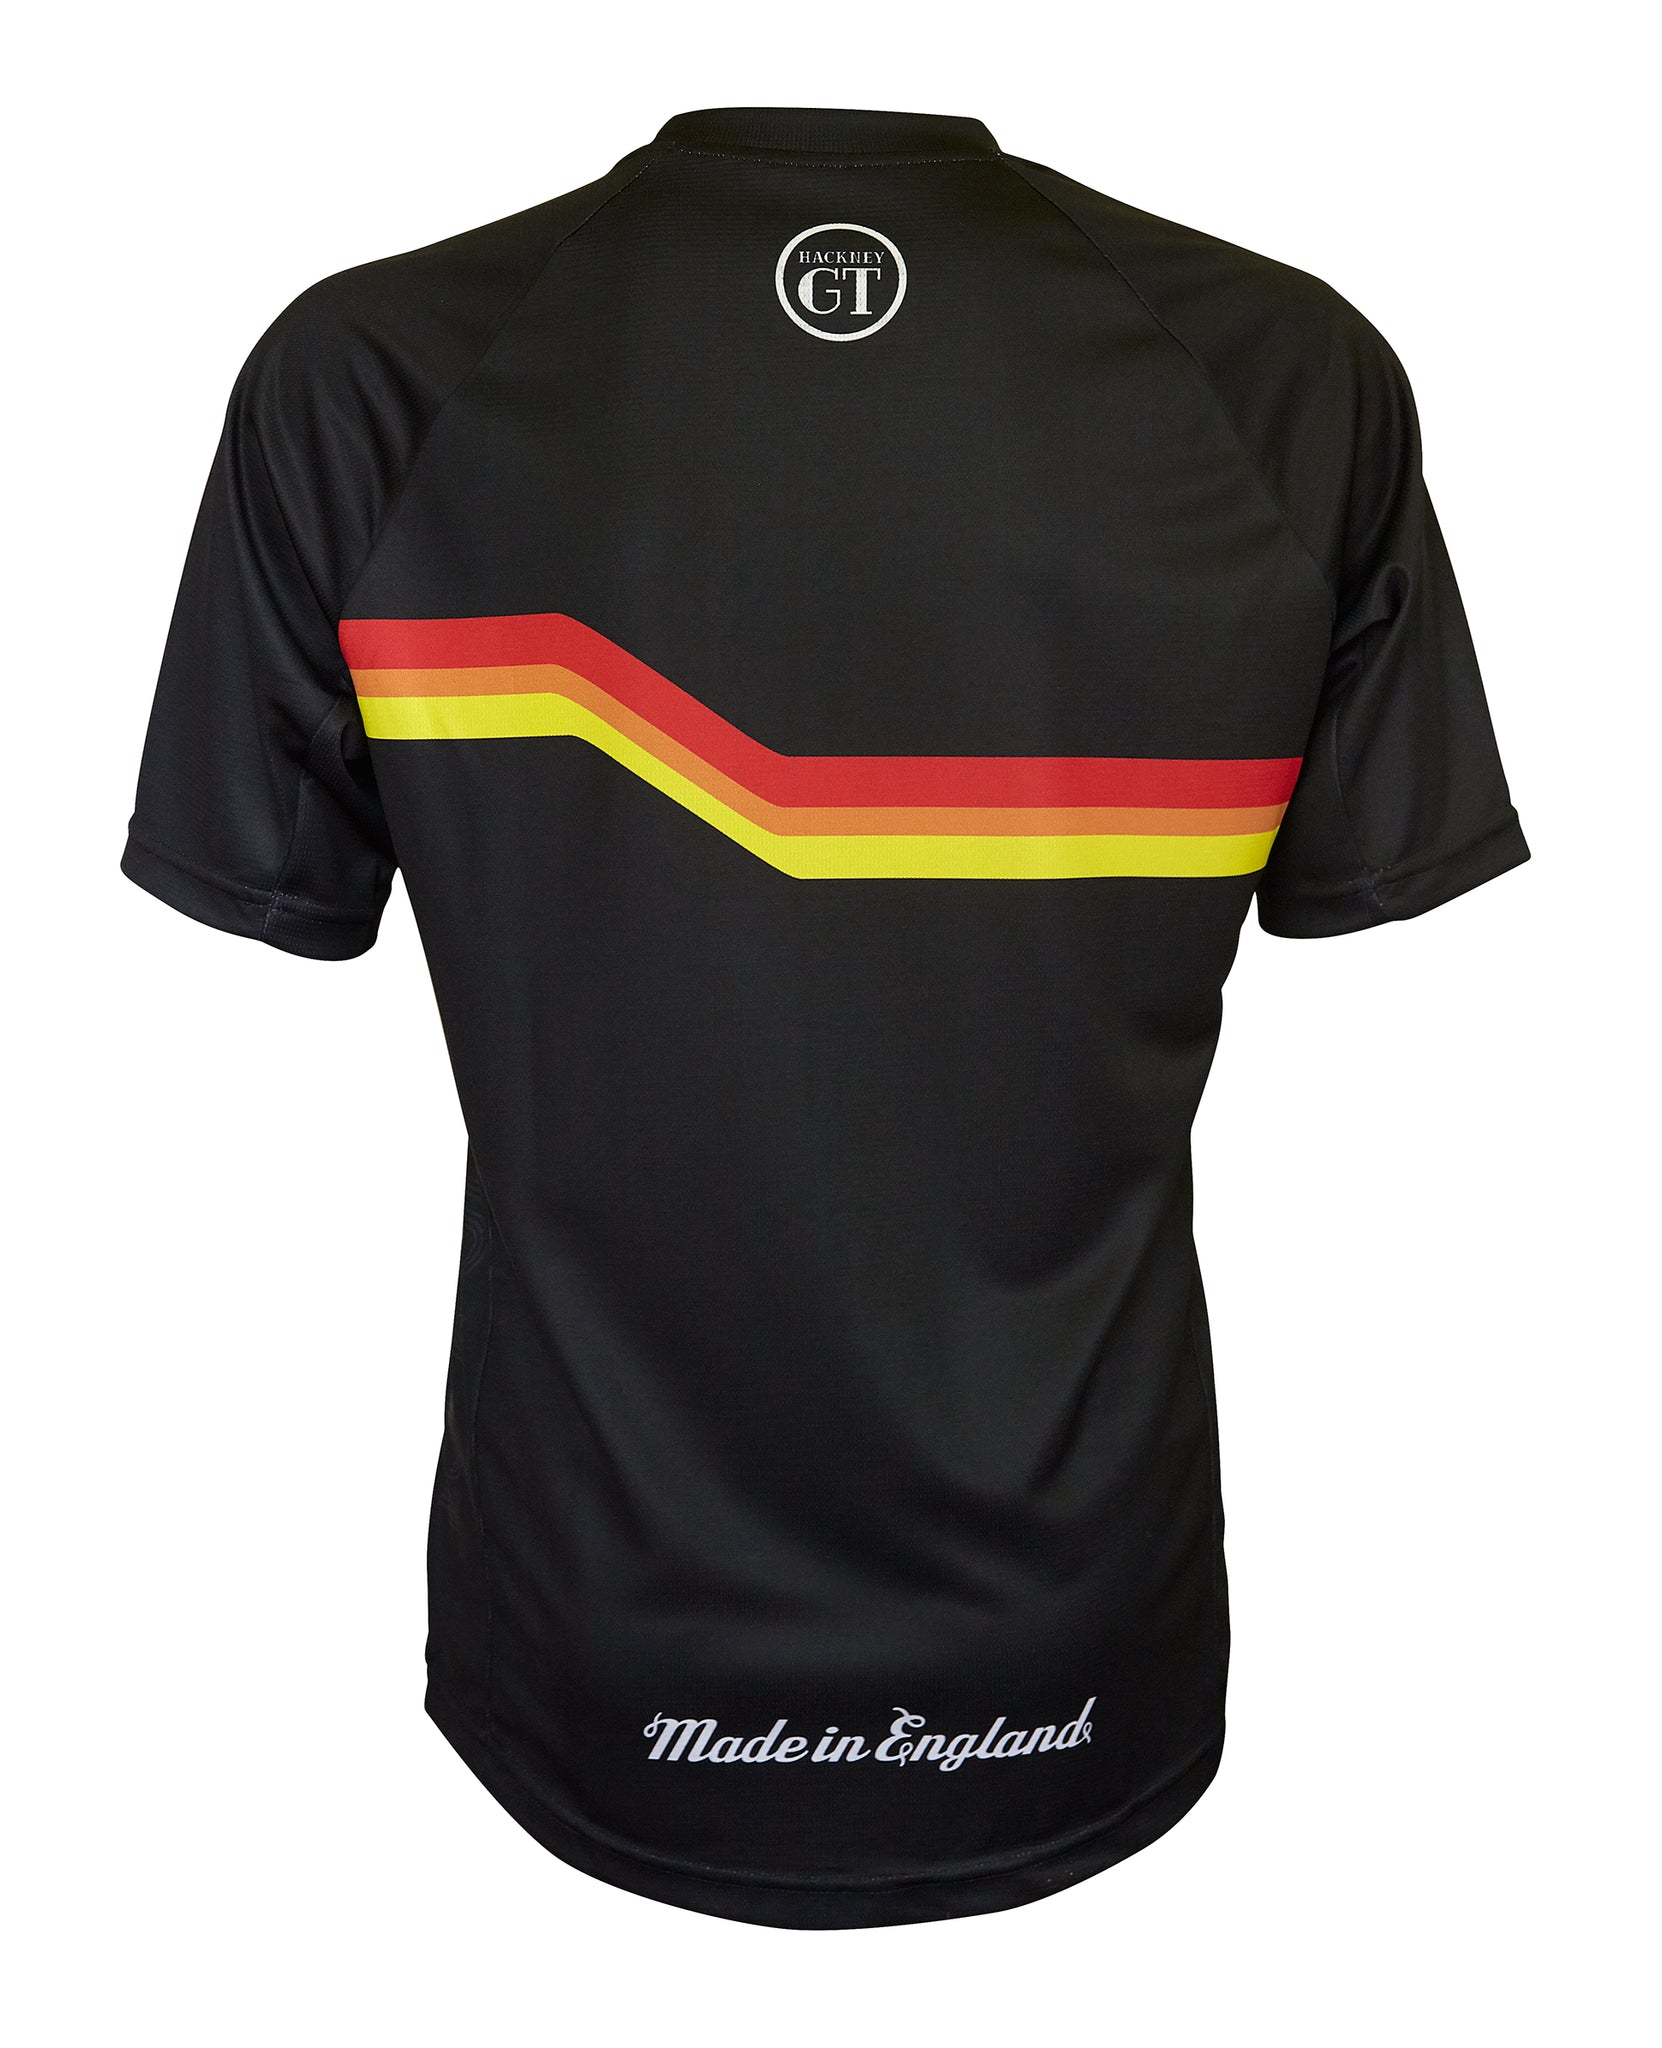 Hackney GT Roadrat short sleeve MTB jersey back